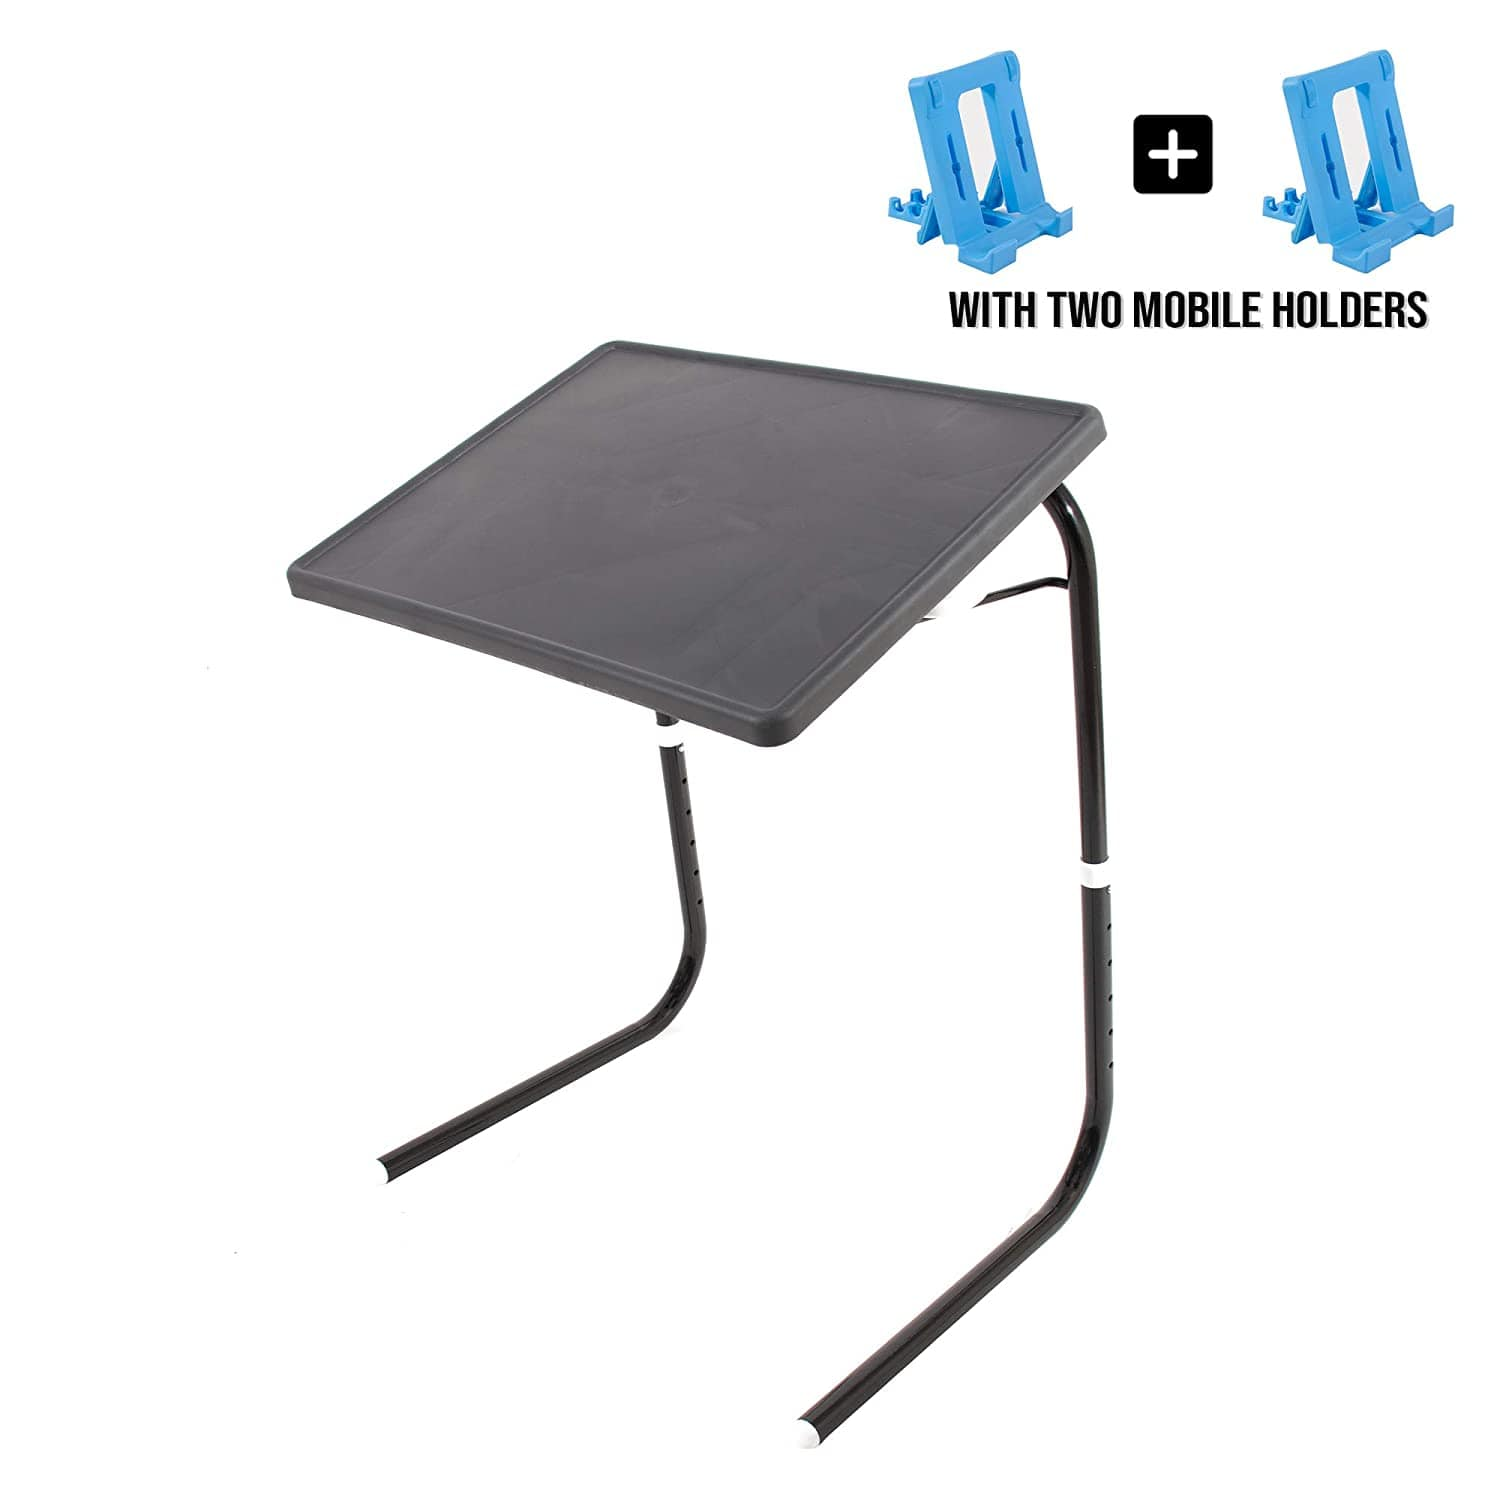 SU KASSA -Wudore Series Multi Purpose Table-  Utility Table -colour Full Black and Two Mobile Holder